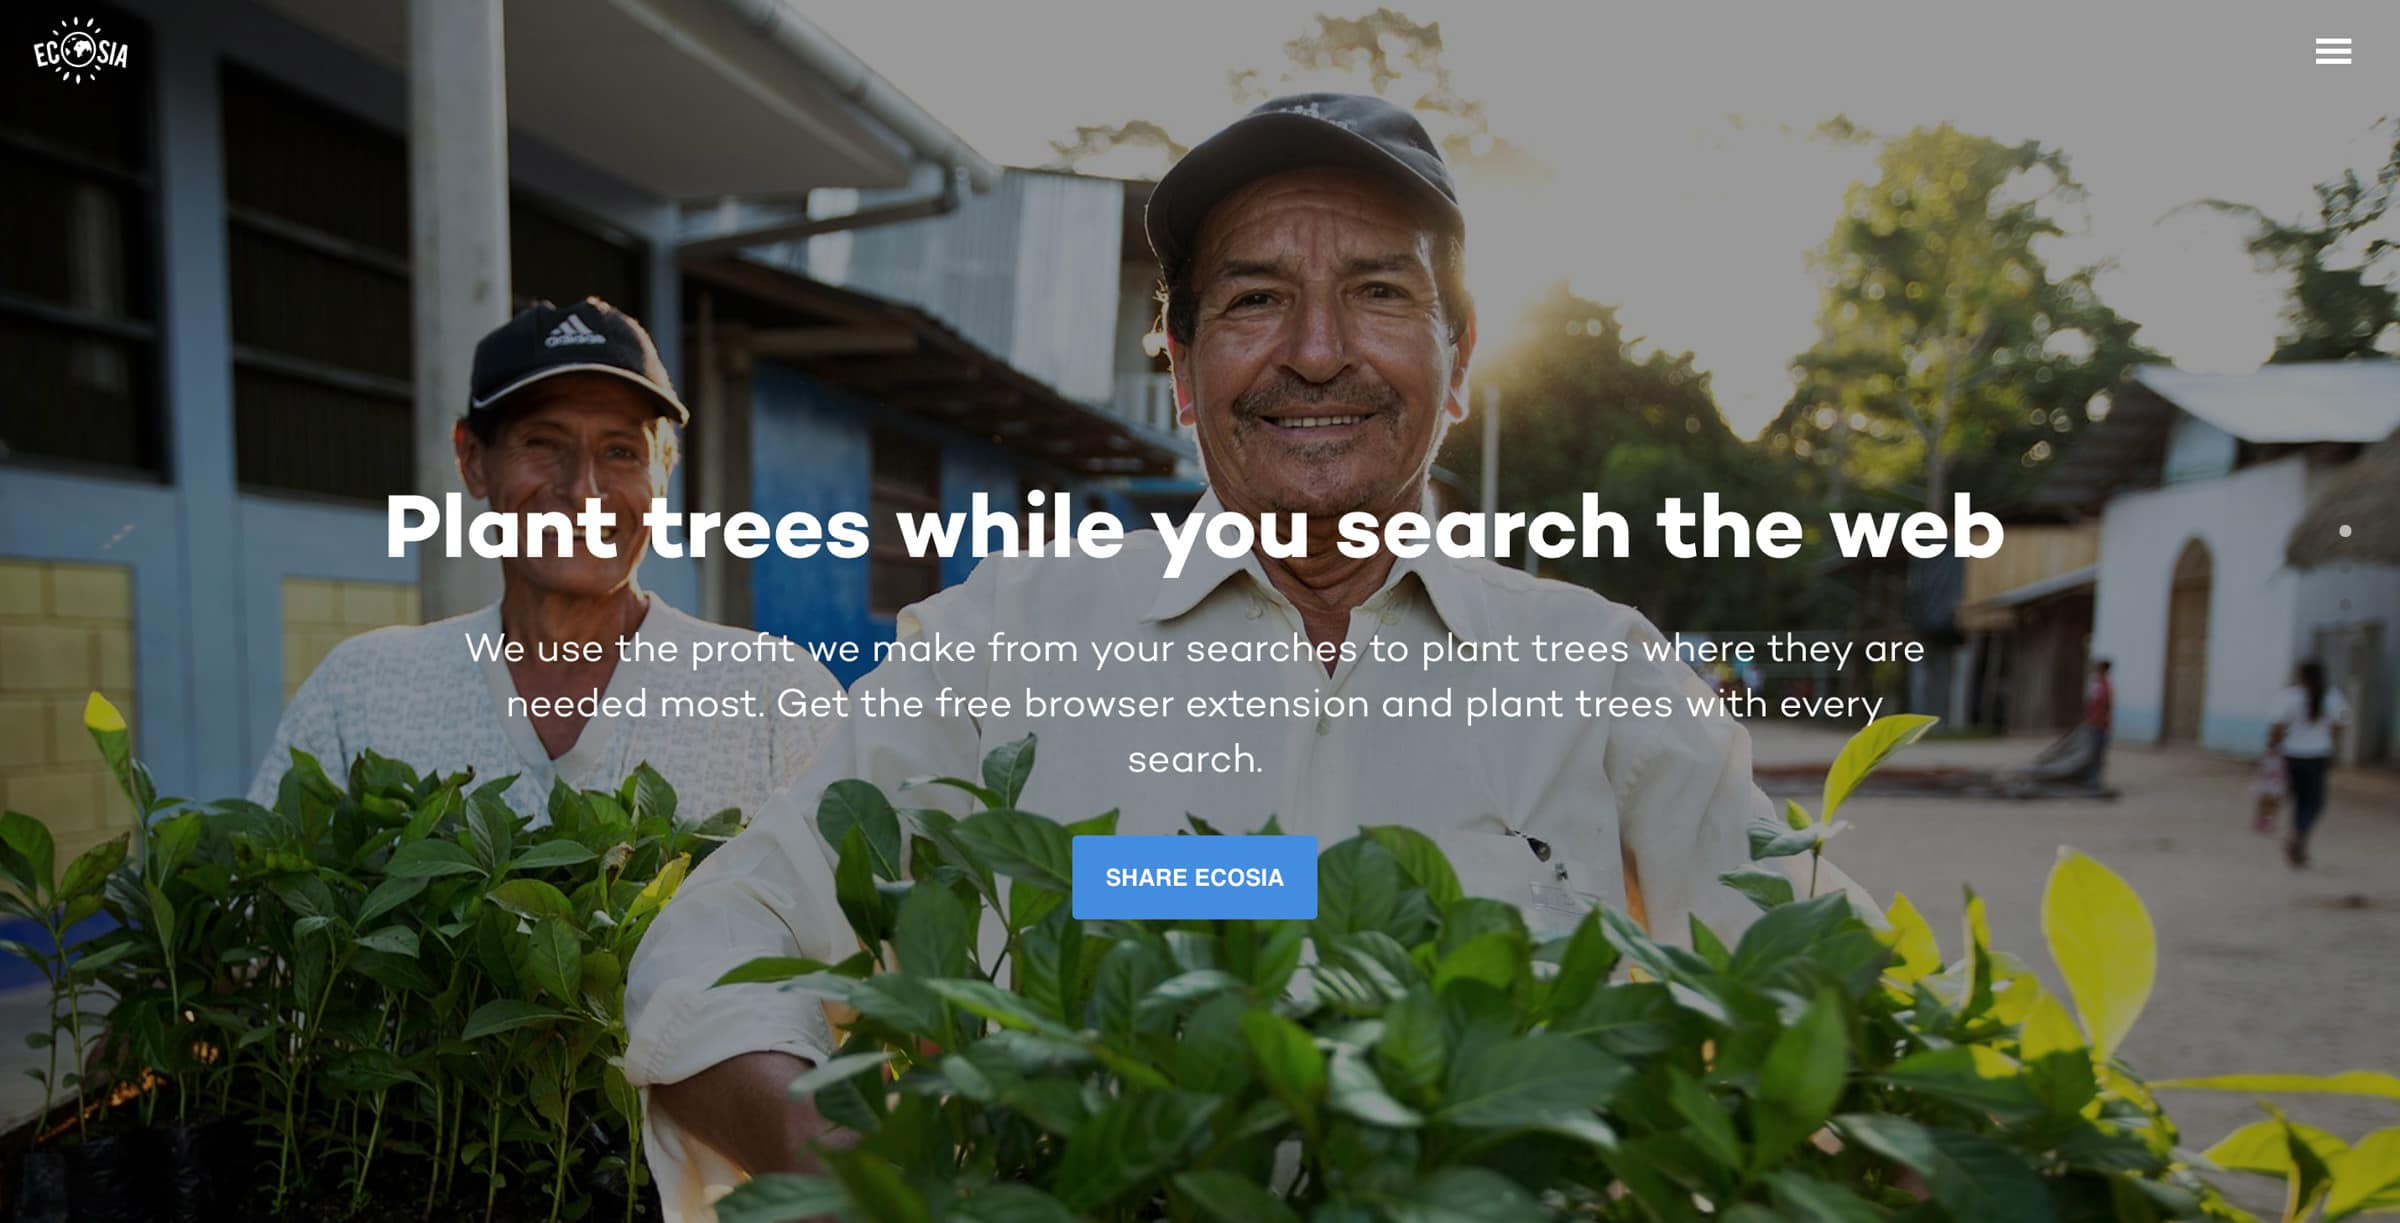 Image of the eco friendly search engine website Ecosia